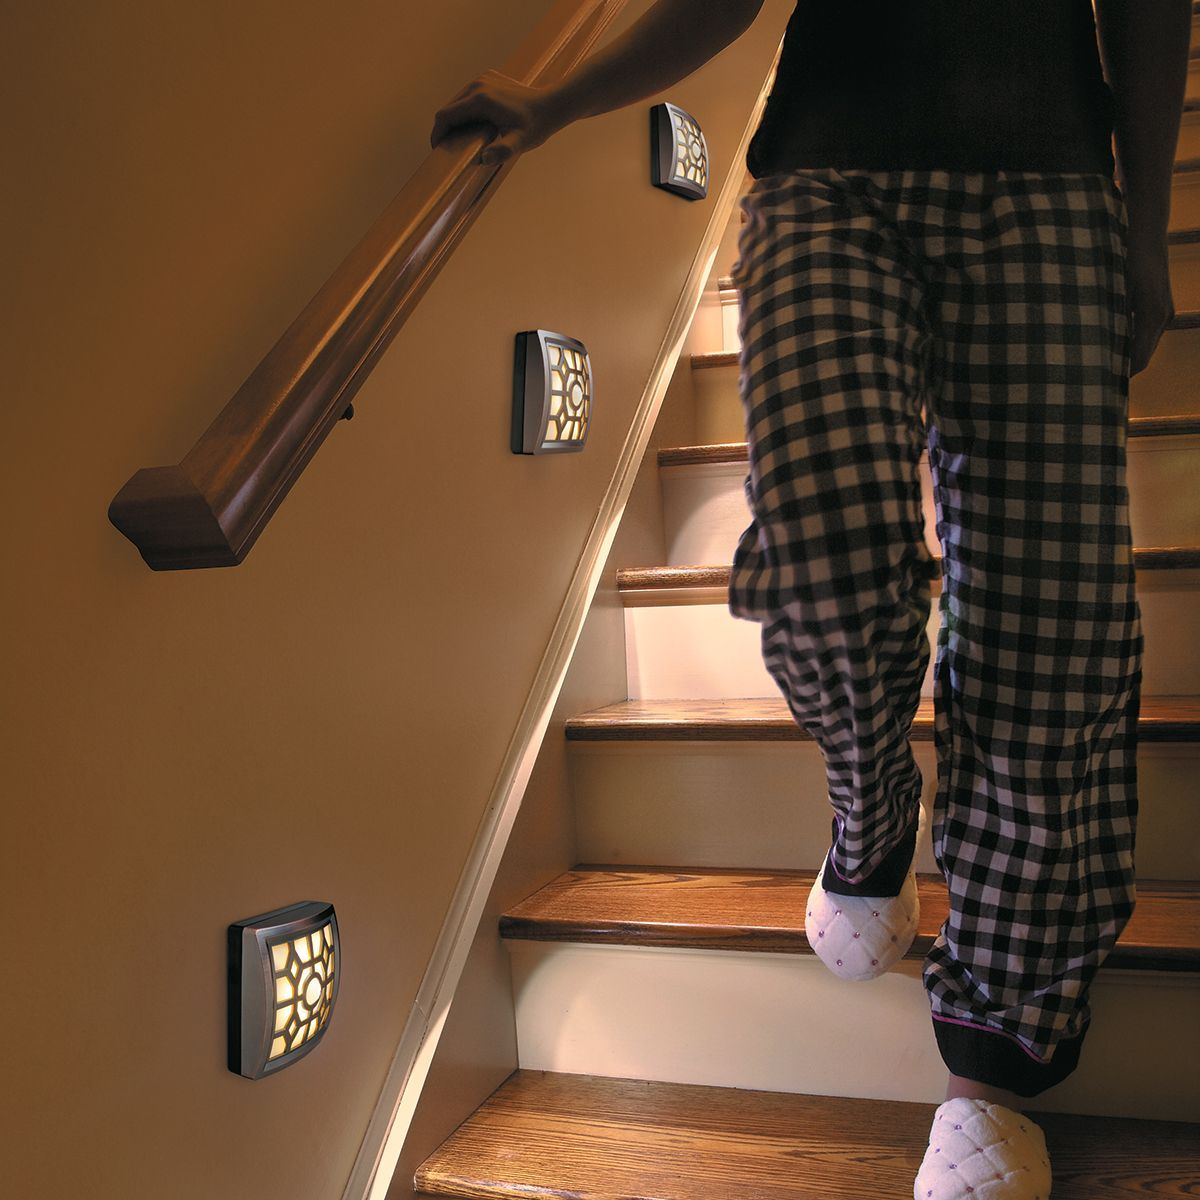 Lovely Soft Glow LED Motion Sensor Light. Needed For The Staircase!